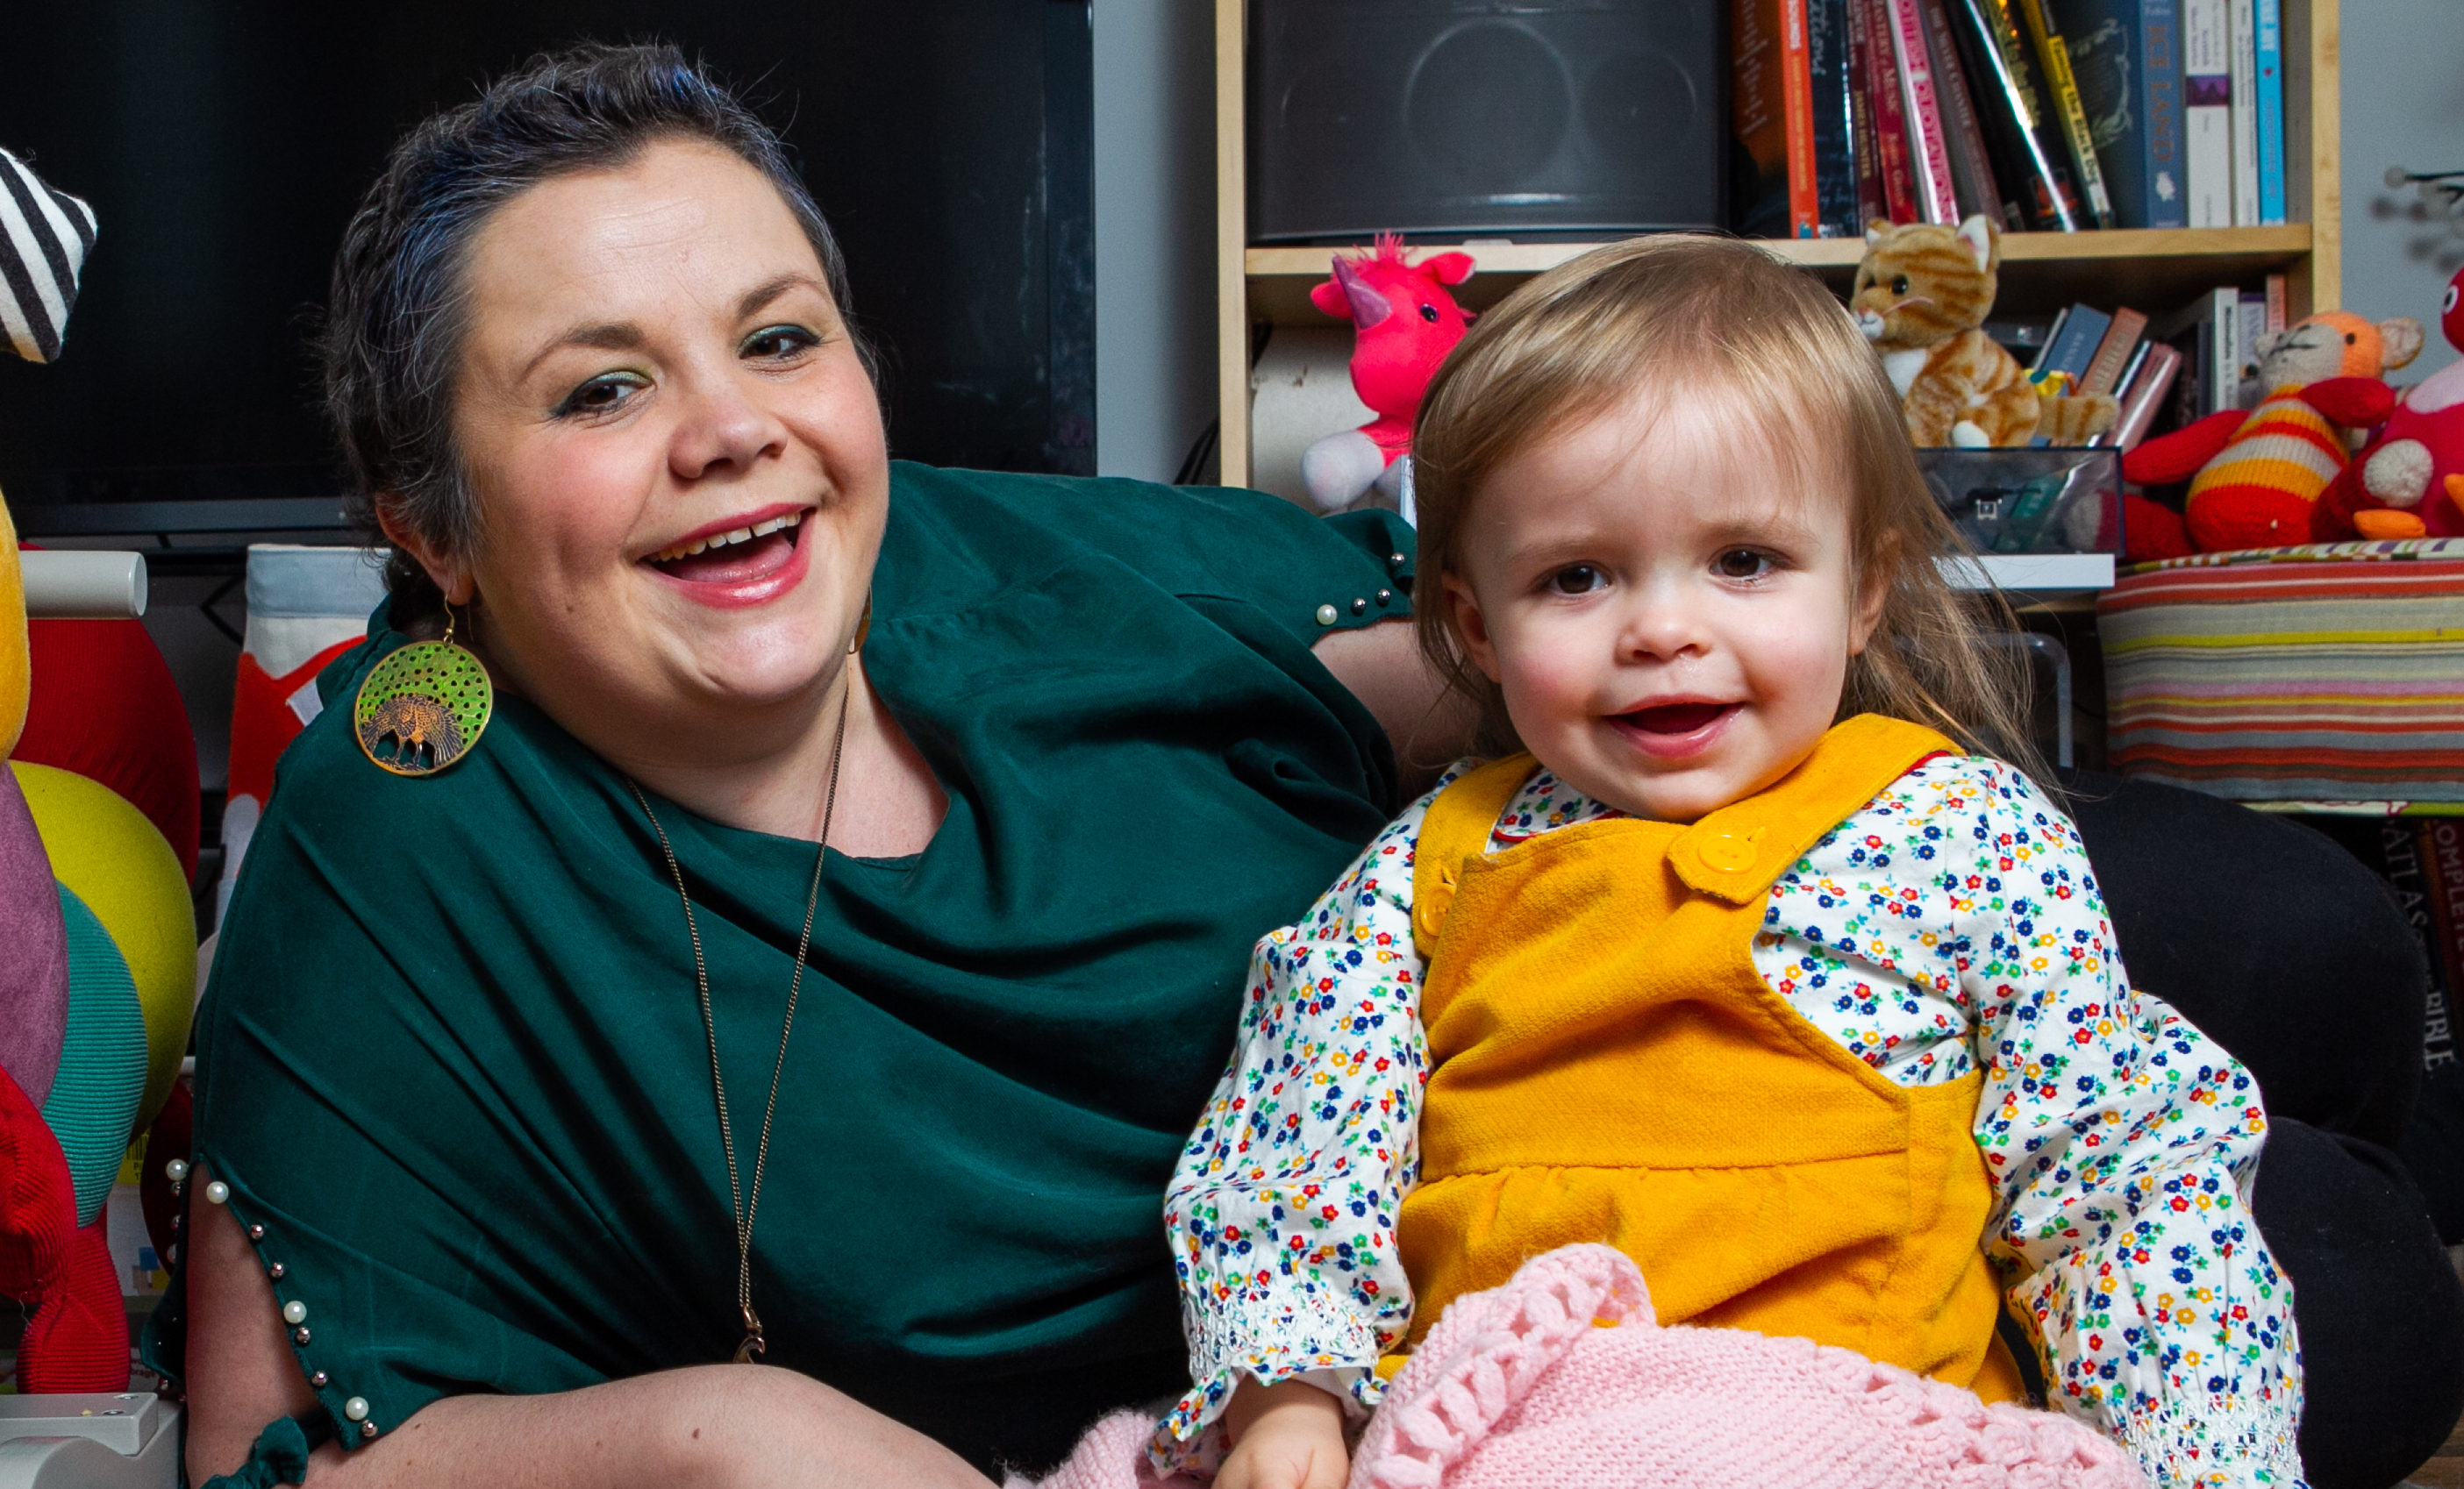 Shona Brown with her daughter Mara (Andrew Cawley / DCT Media)